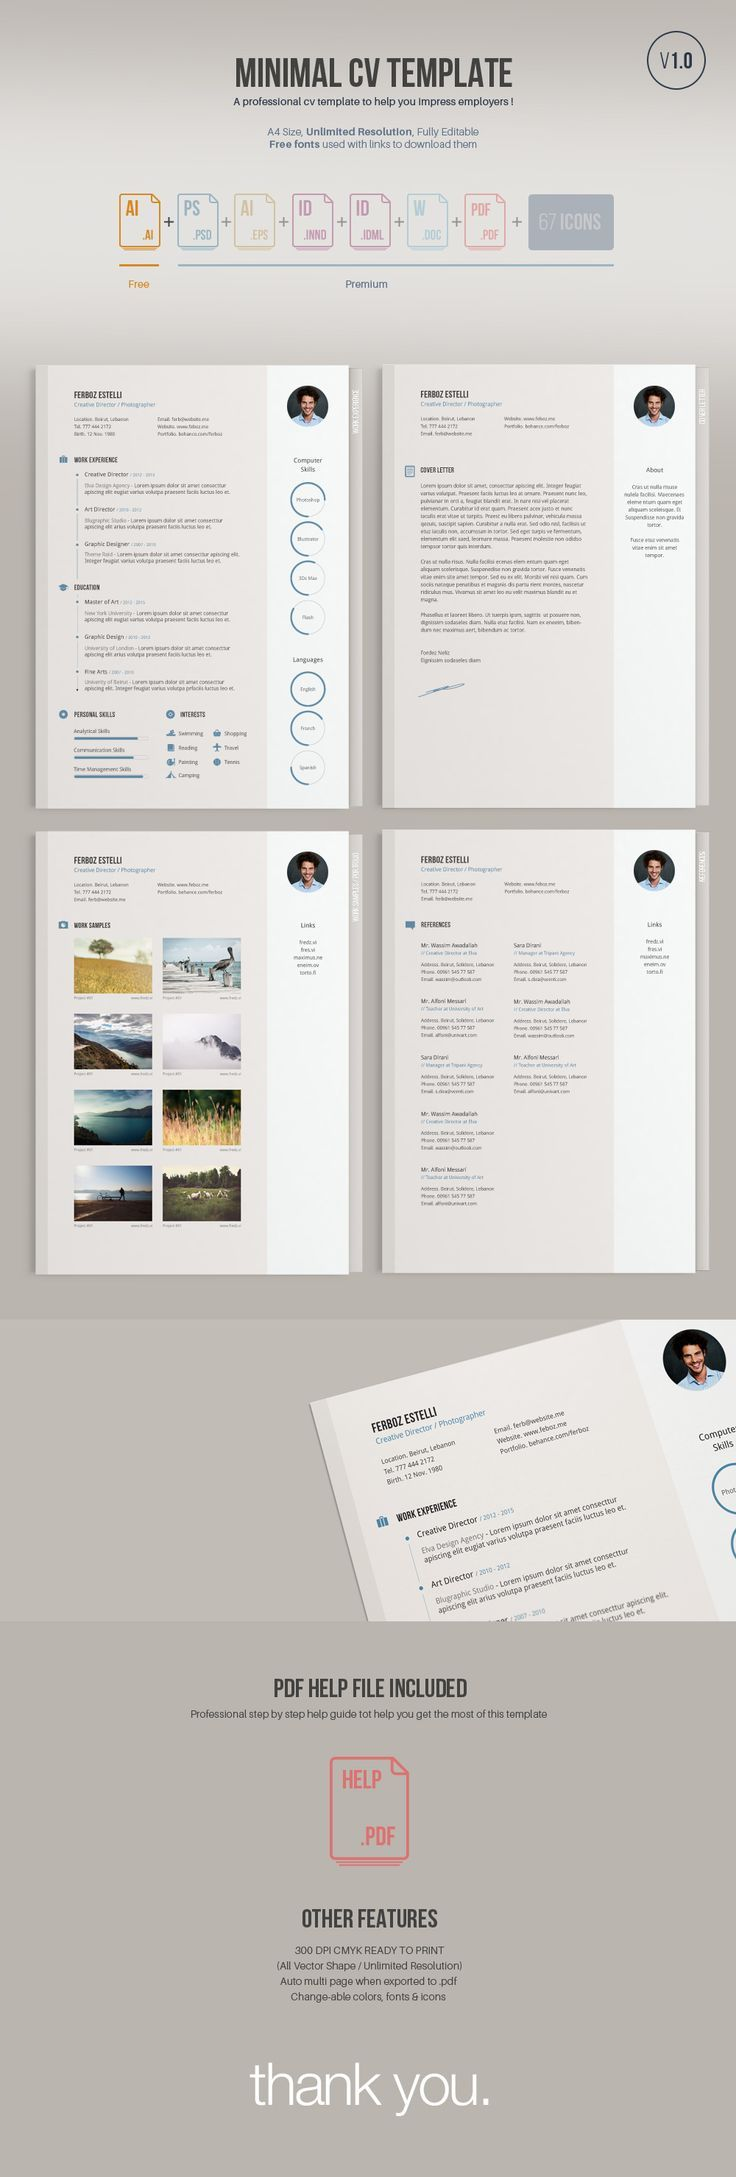 A minimal easy to edit free resume template; free version comes in illustrator vector Ai format.